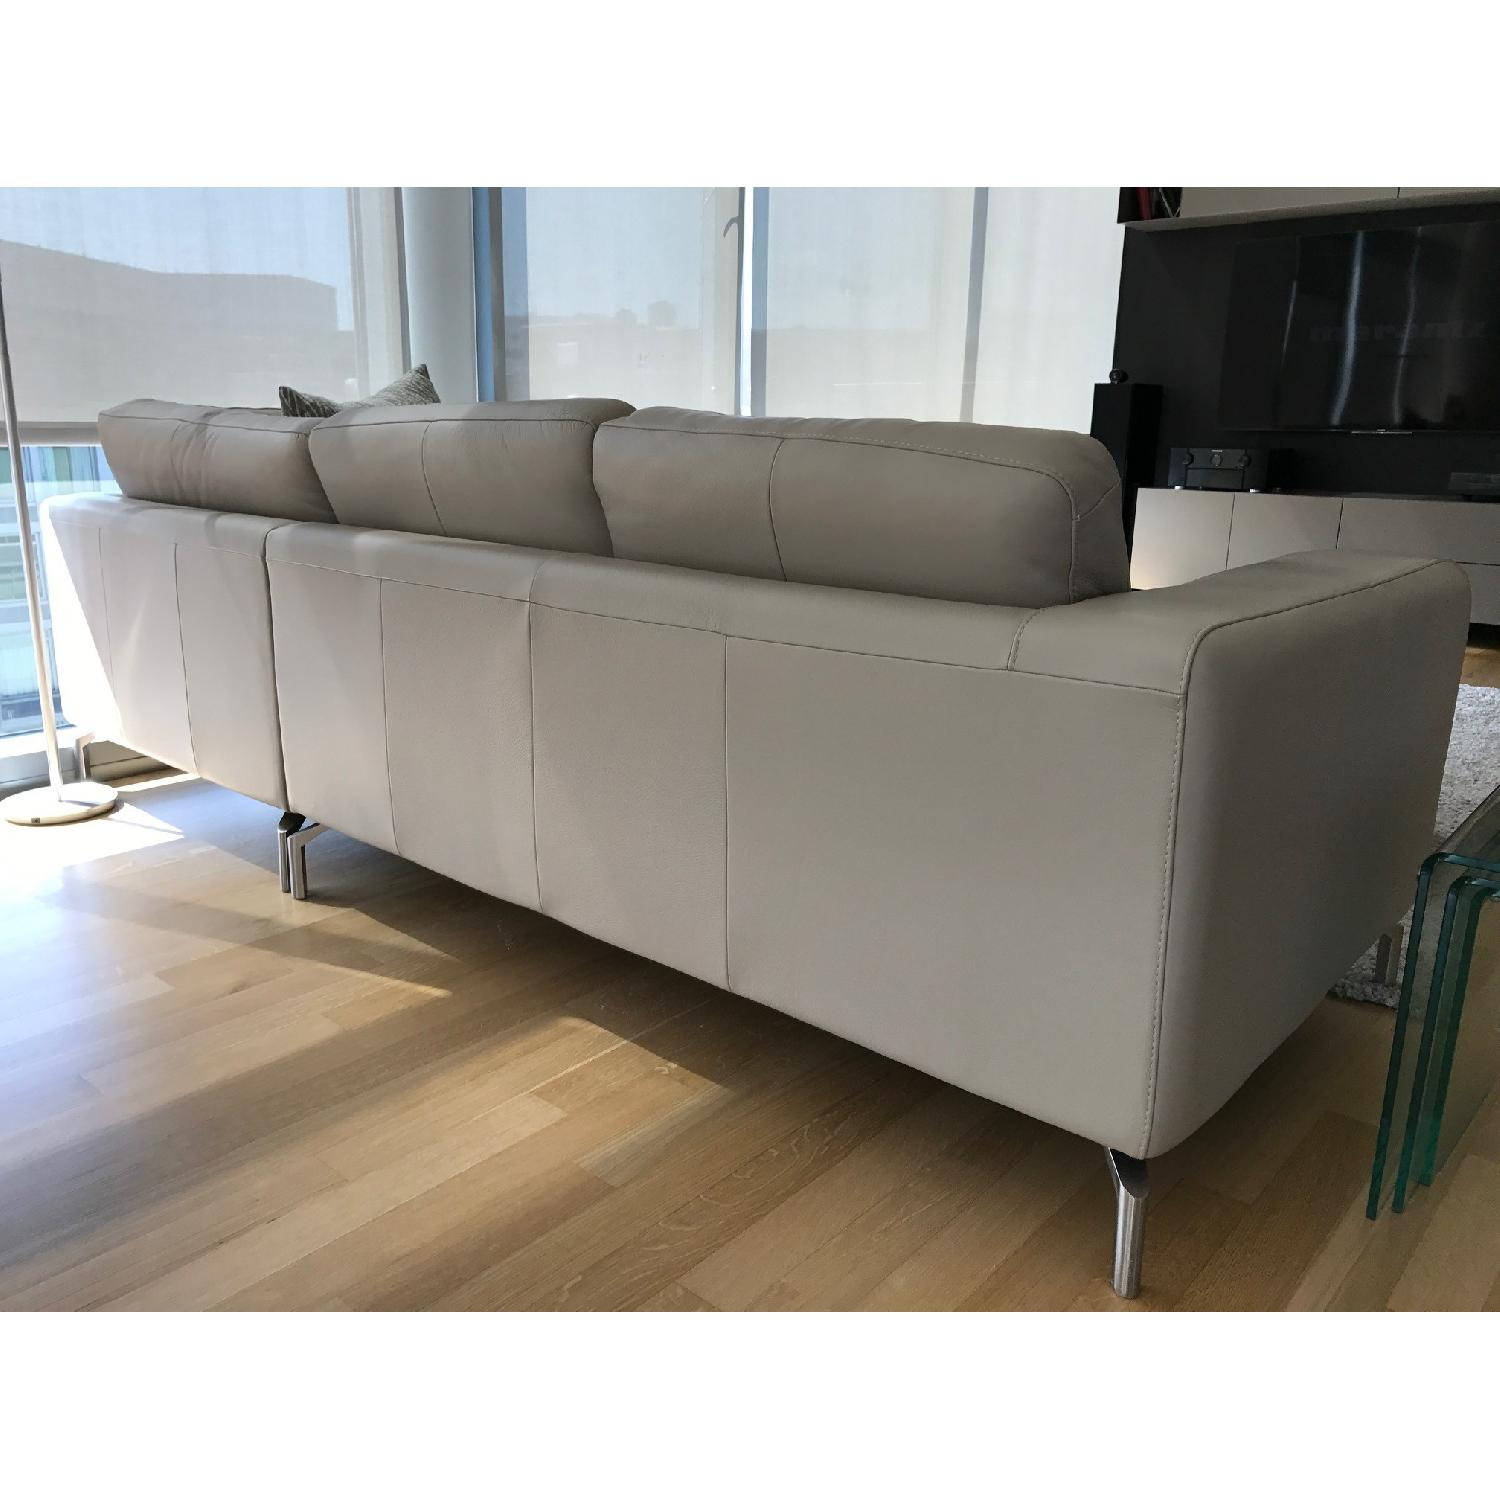 ... Natuzzi Savoy 5-Seat Sectional Corner Sofa in Taupe-1 ...  sc 1 st  AptDeco : taupe sectional - Sectionals, Sofas & Couches